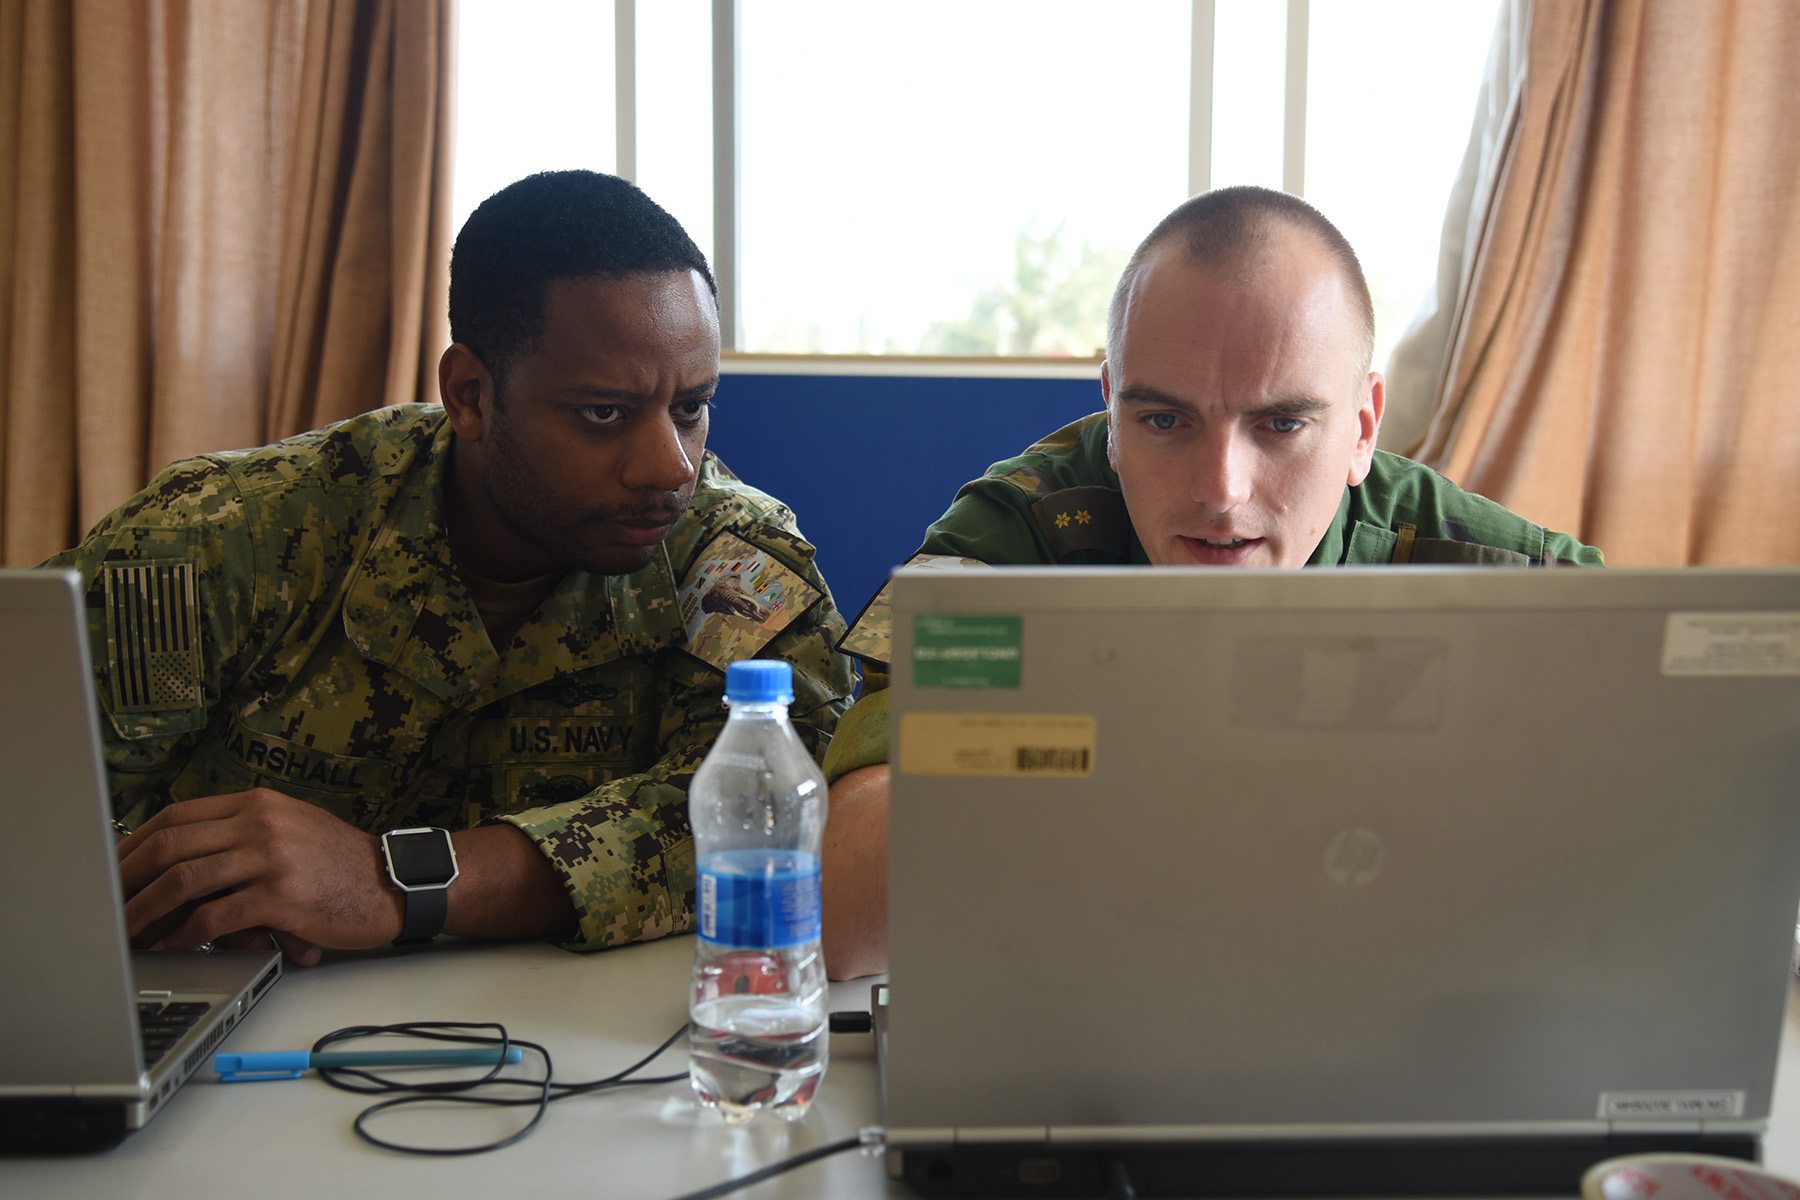 DAR ES SALAAM, Tanzania – U.S. Navy Petty Officer 1st Class Jaimee Marshall and Dutch Lt. Rene Kleijer, Eastern Accord 2016 participants, complete tasks for the first day of the command post exercise at the Tanzanian Peacekeeping Training Centre, July 19, 2016, in Dar es Salaam, Tanzania. EA16 is an annual, combined, joint military exercise that brings together partner nations to practice and demonstrate proficiency in conducting peacekeeping operations. (U.S. Air Force photo by Staff Sgt. Tiffany DeNault)